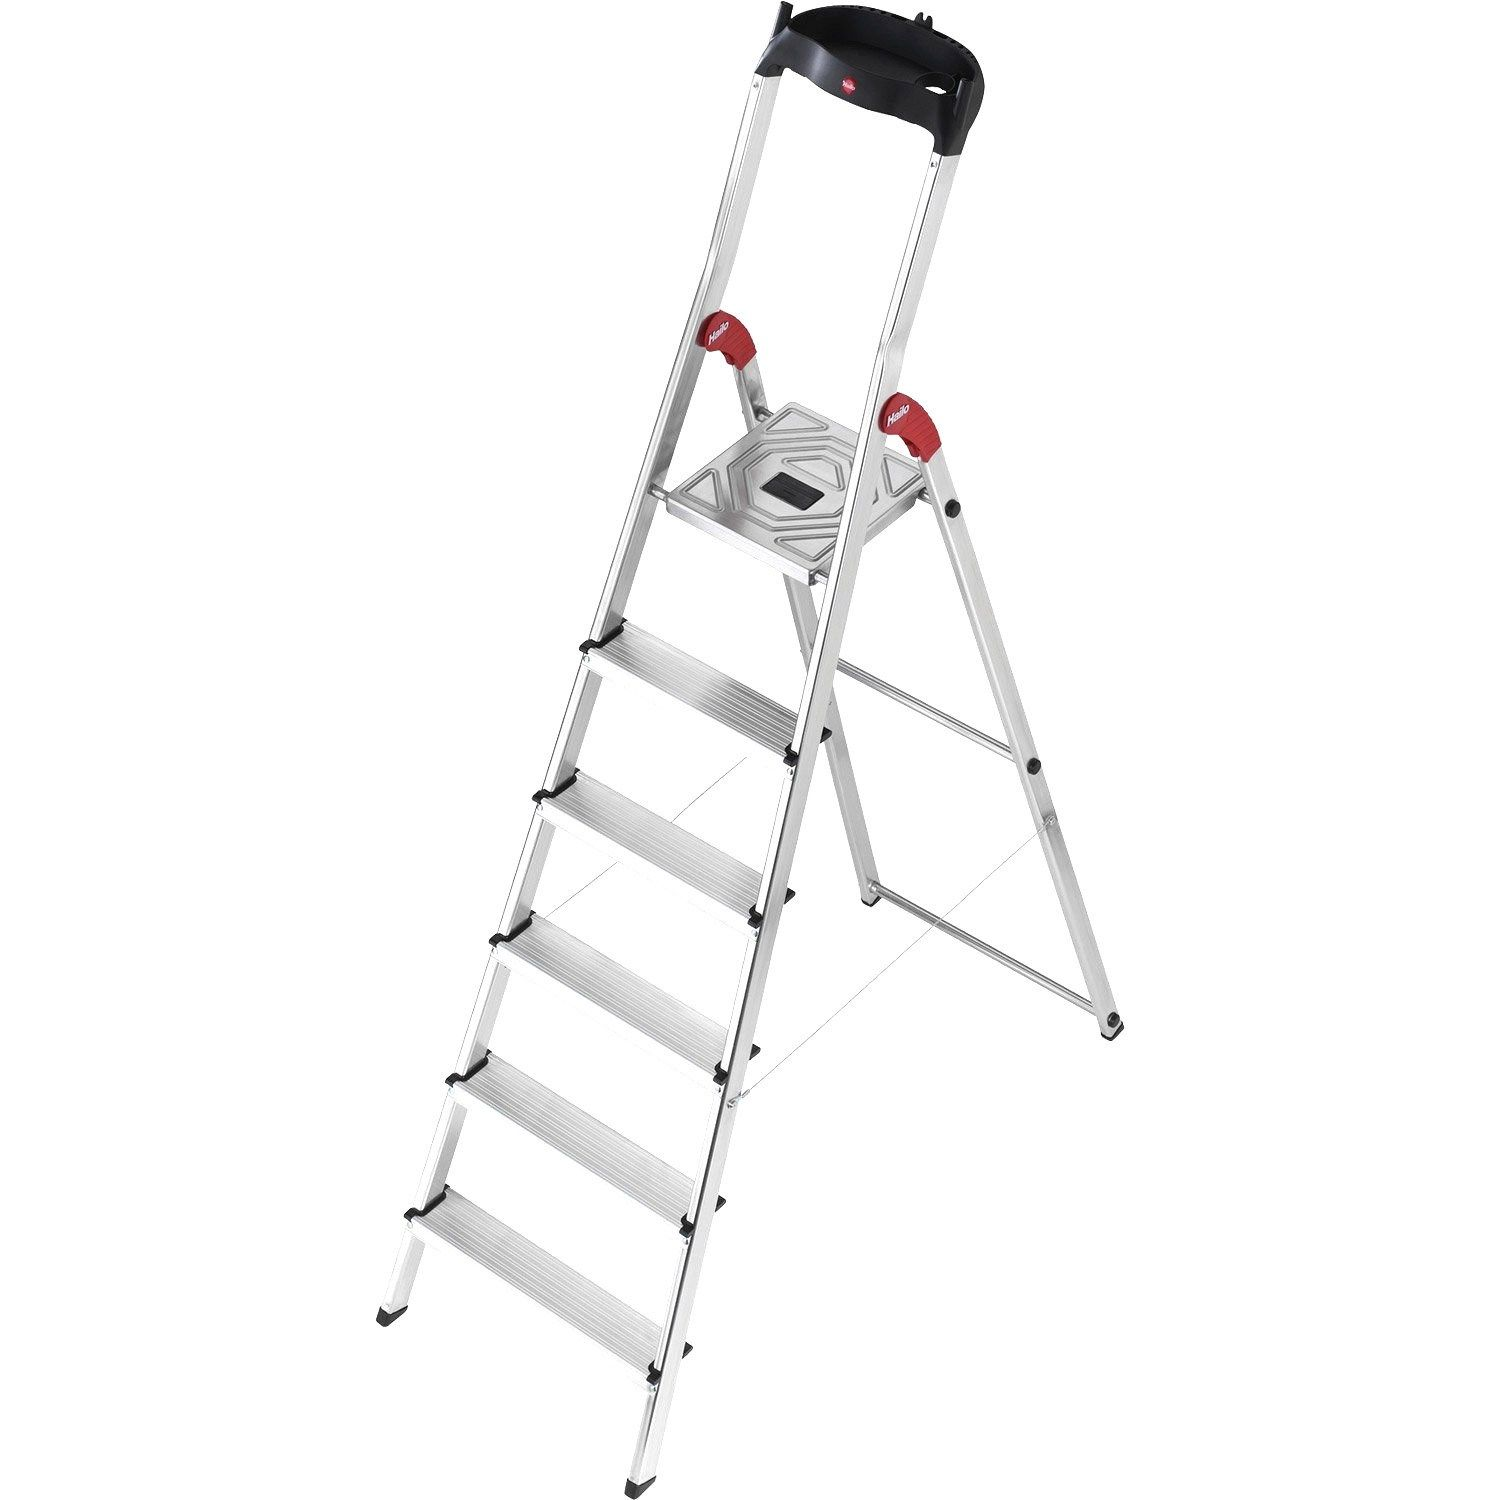 Lovely Echelle Telescopique Mr Bricolage Ladder